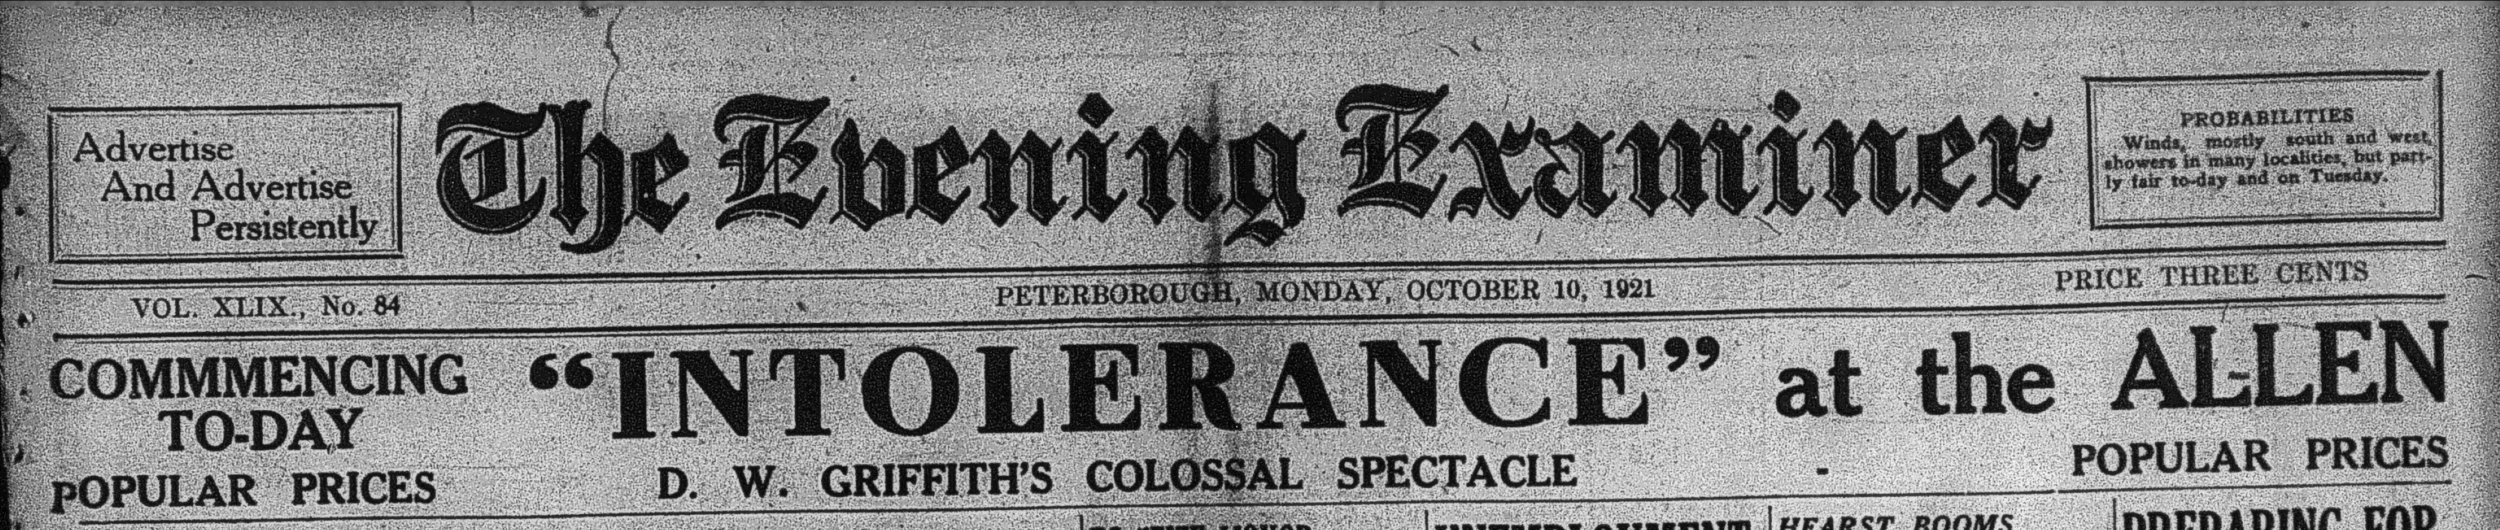 Examiner , Oct. 10, 1921, p.1. Big competition: a front-page banner for the return of a classic at popular prices.